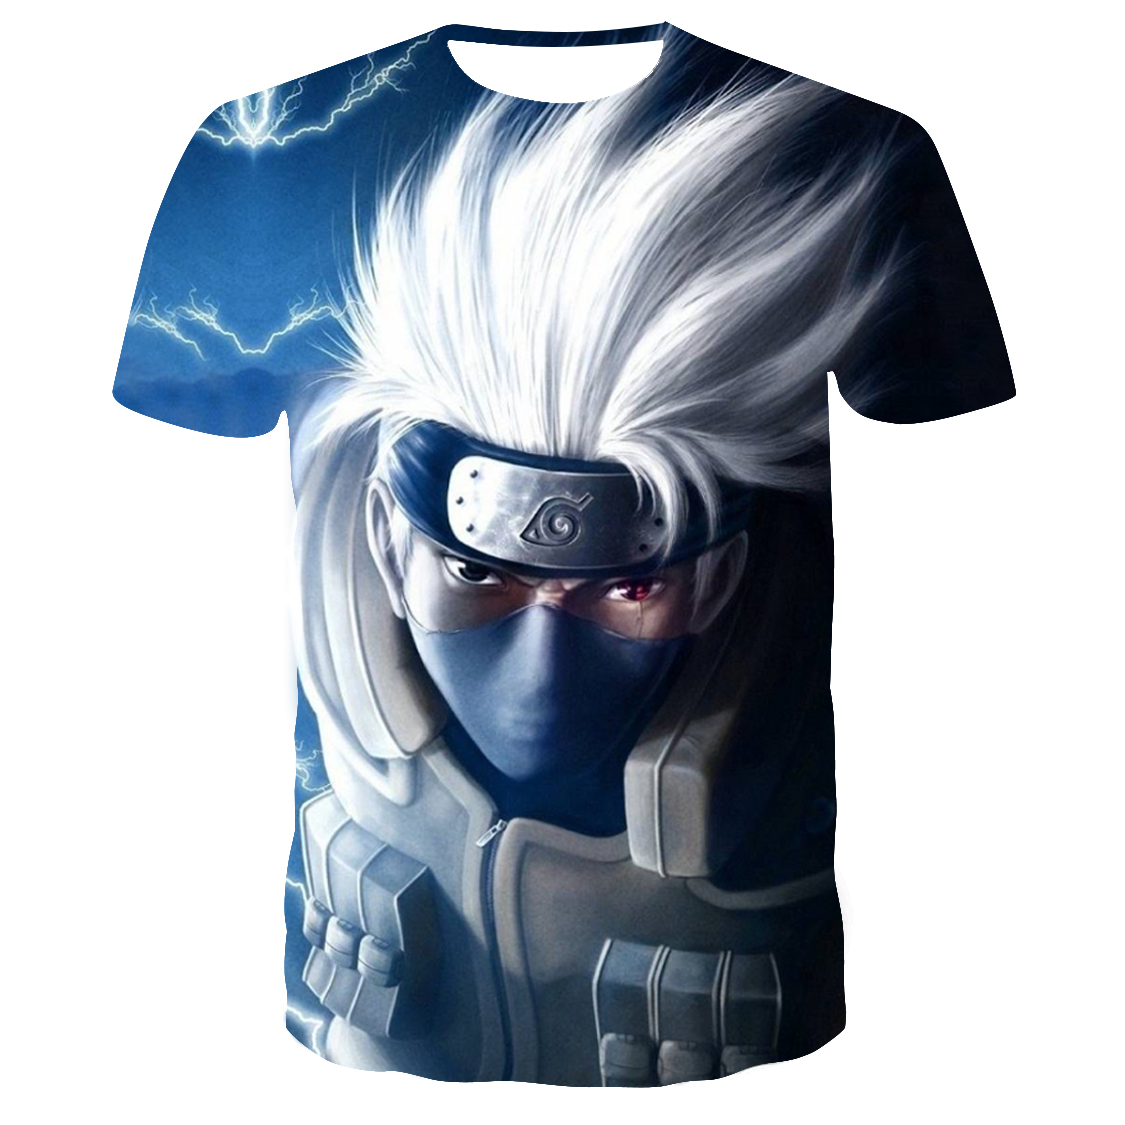 2019 New 3D Naruto T Shirt Men/women Fashion Streetwear Hip Hop Harajuku 3D Print Naruto Men's T Shirt Clothes Top